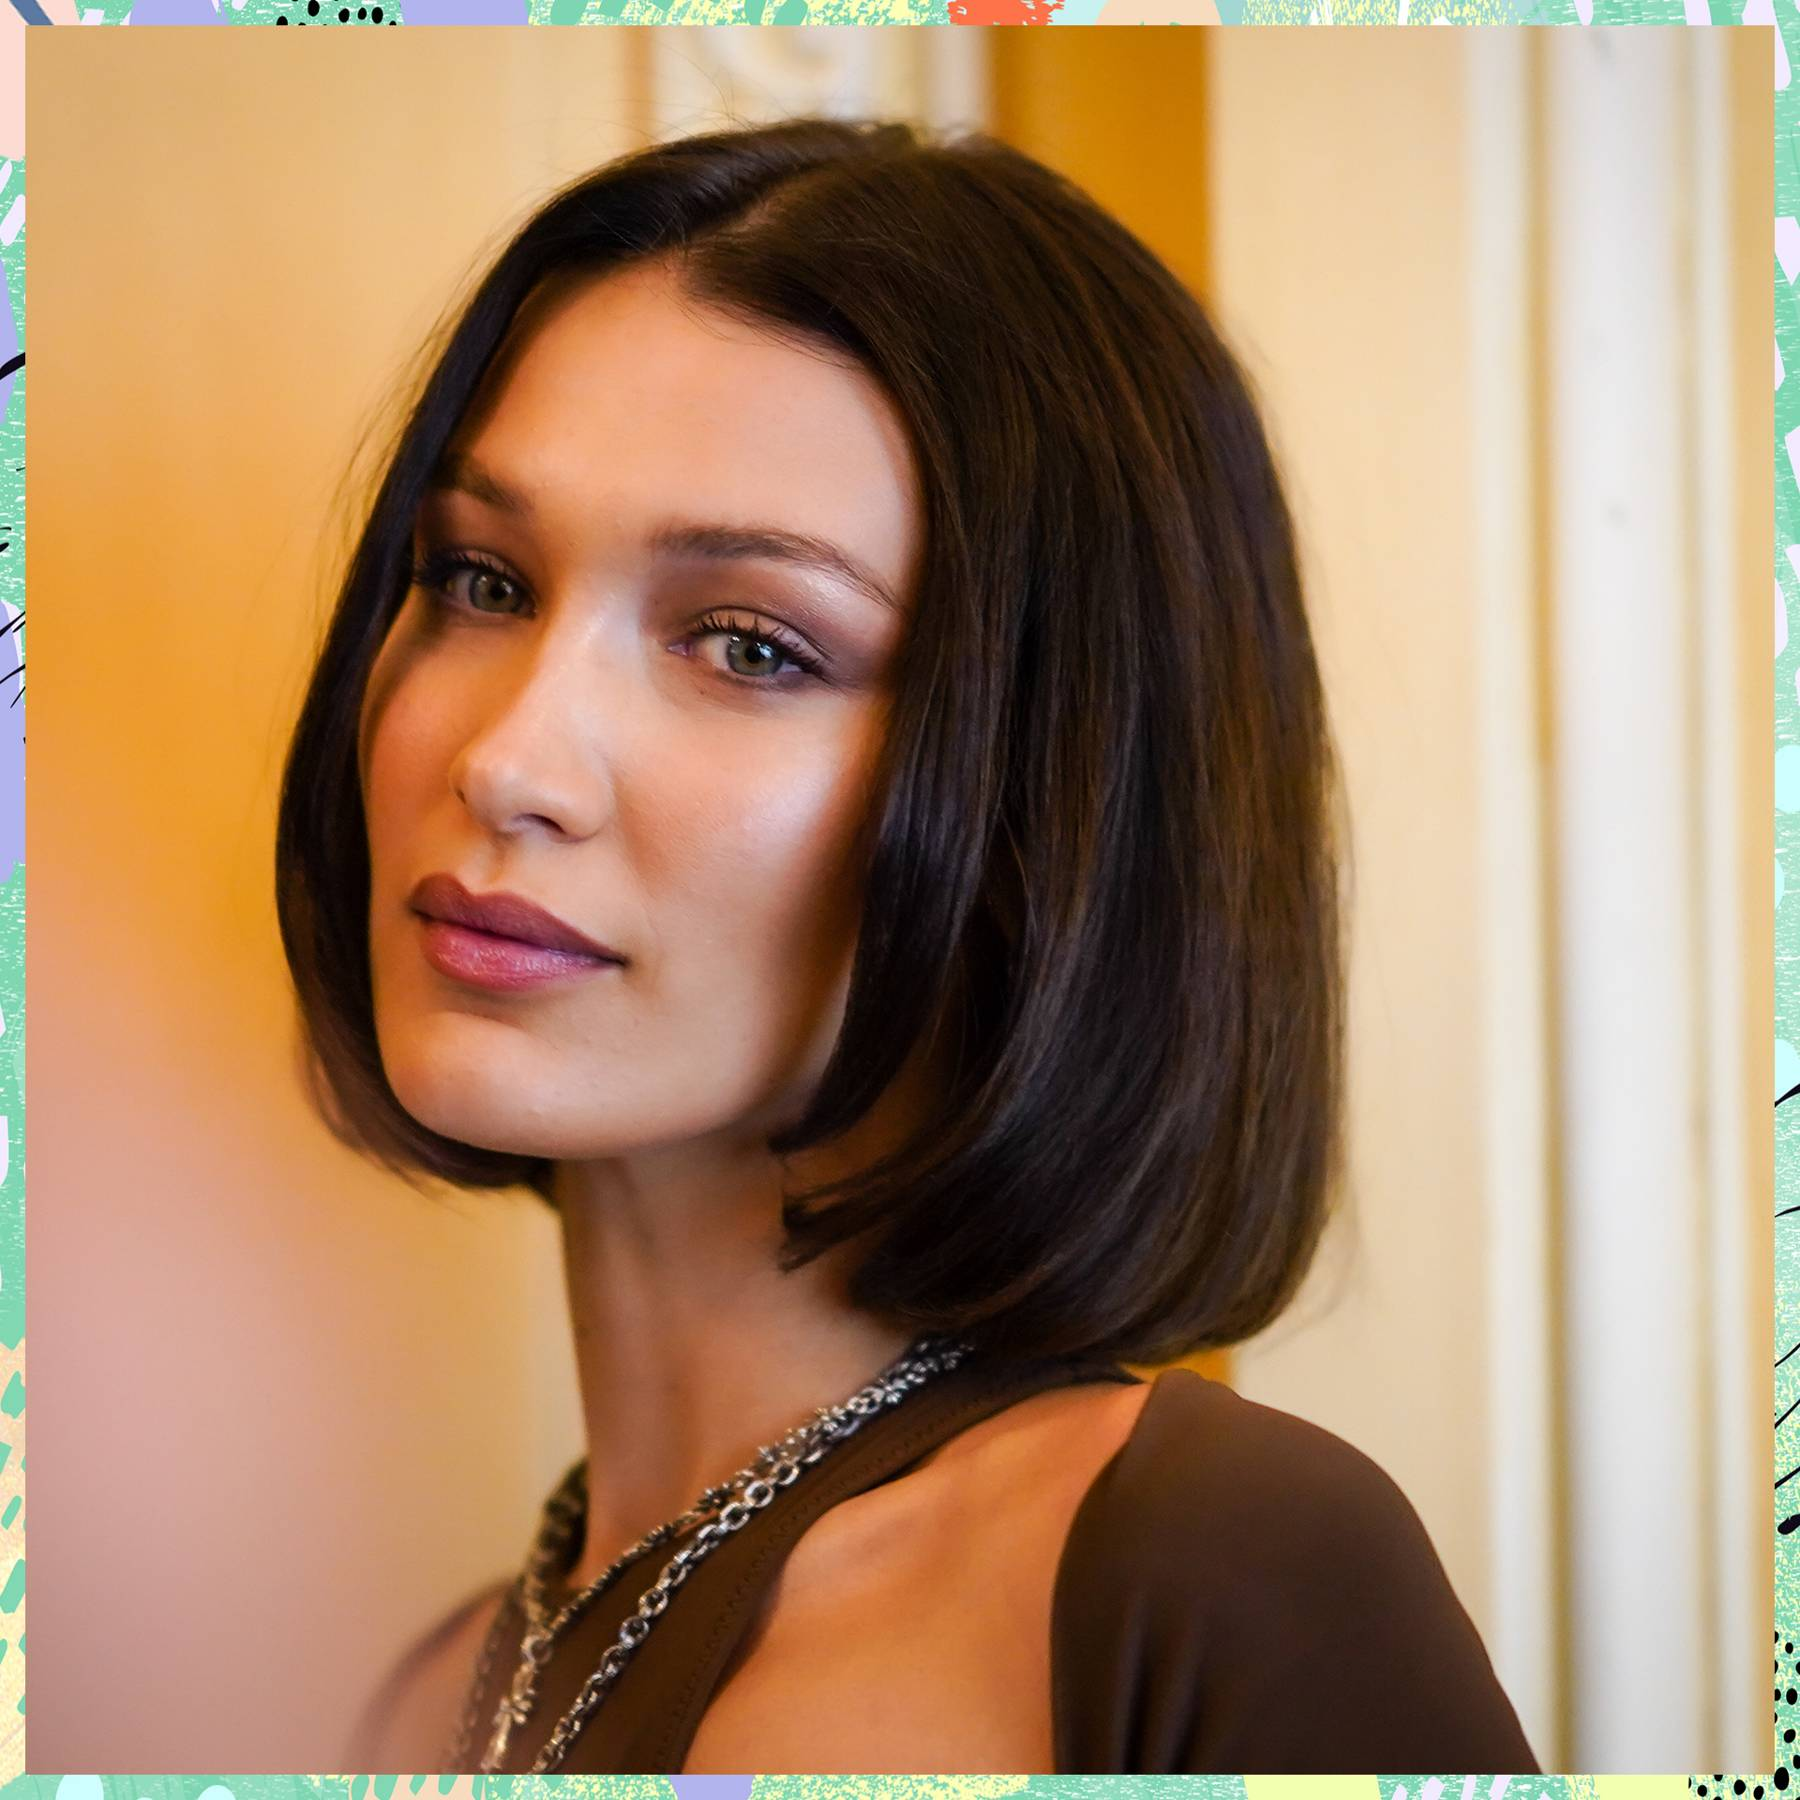 Bella Hadid's white-blonde hair makes her look like a different person